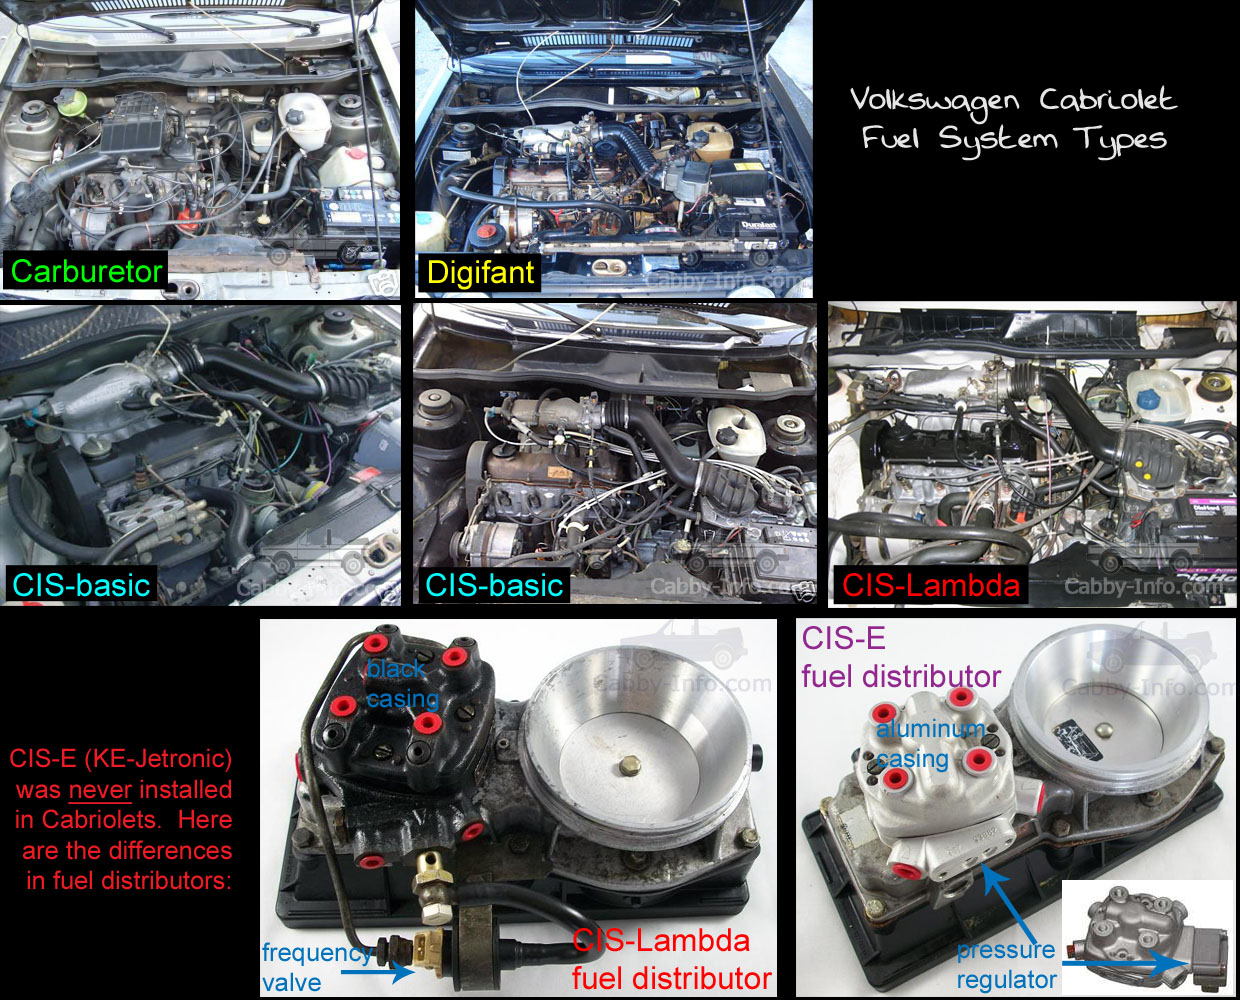 hight resolution of fuel system volkswagen cabriolet fuel system diagram